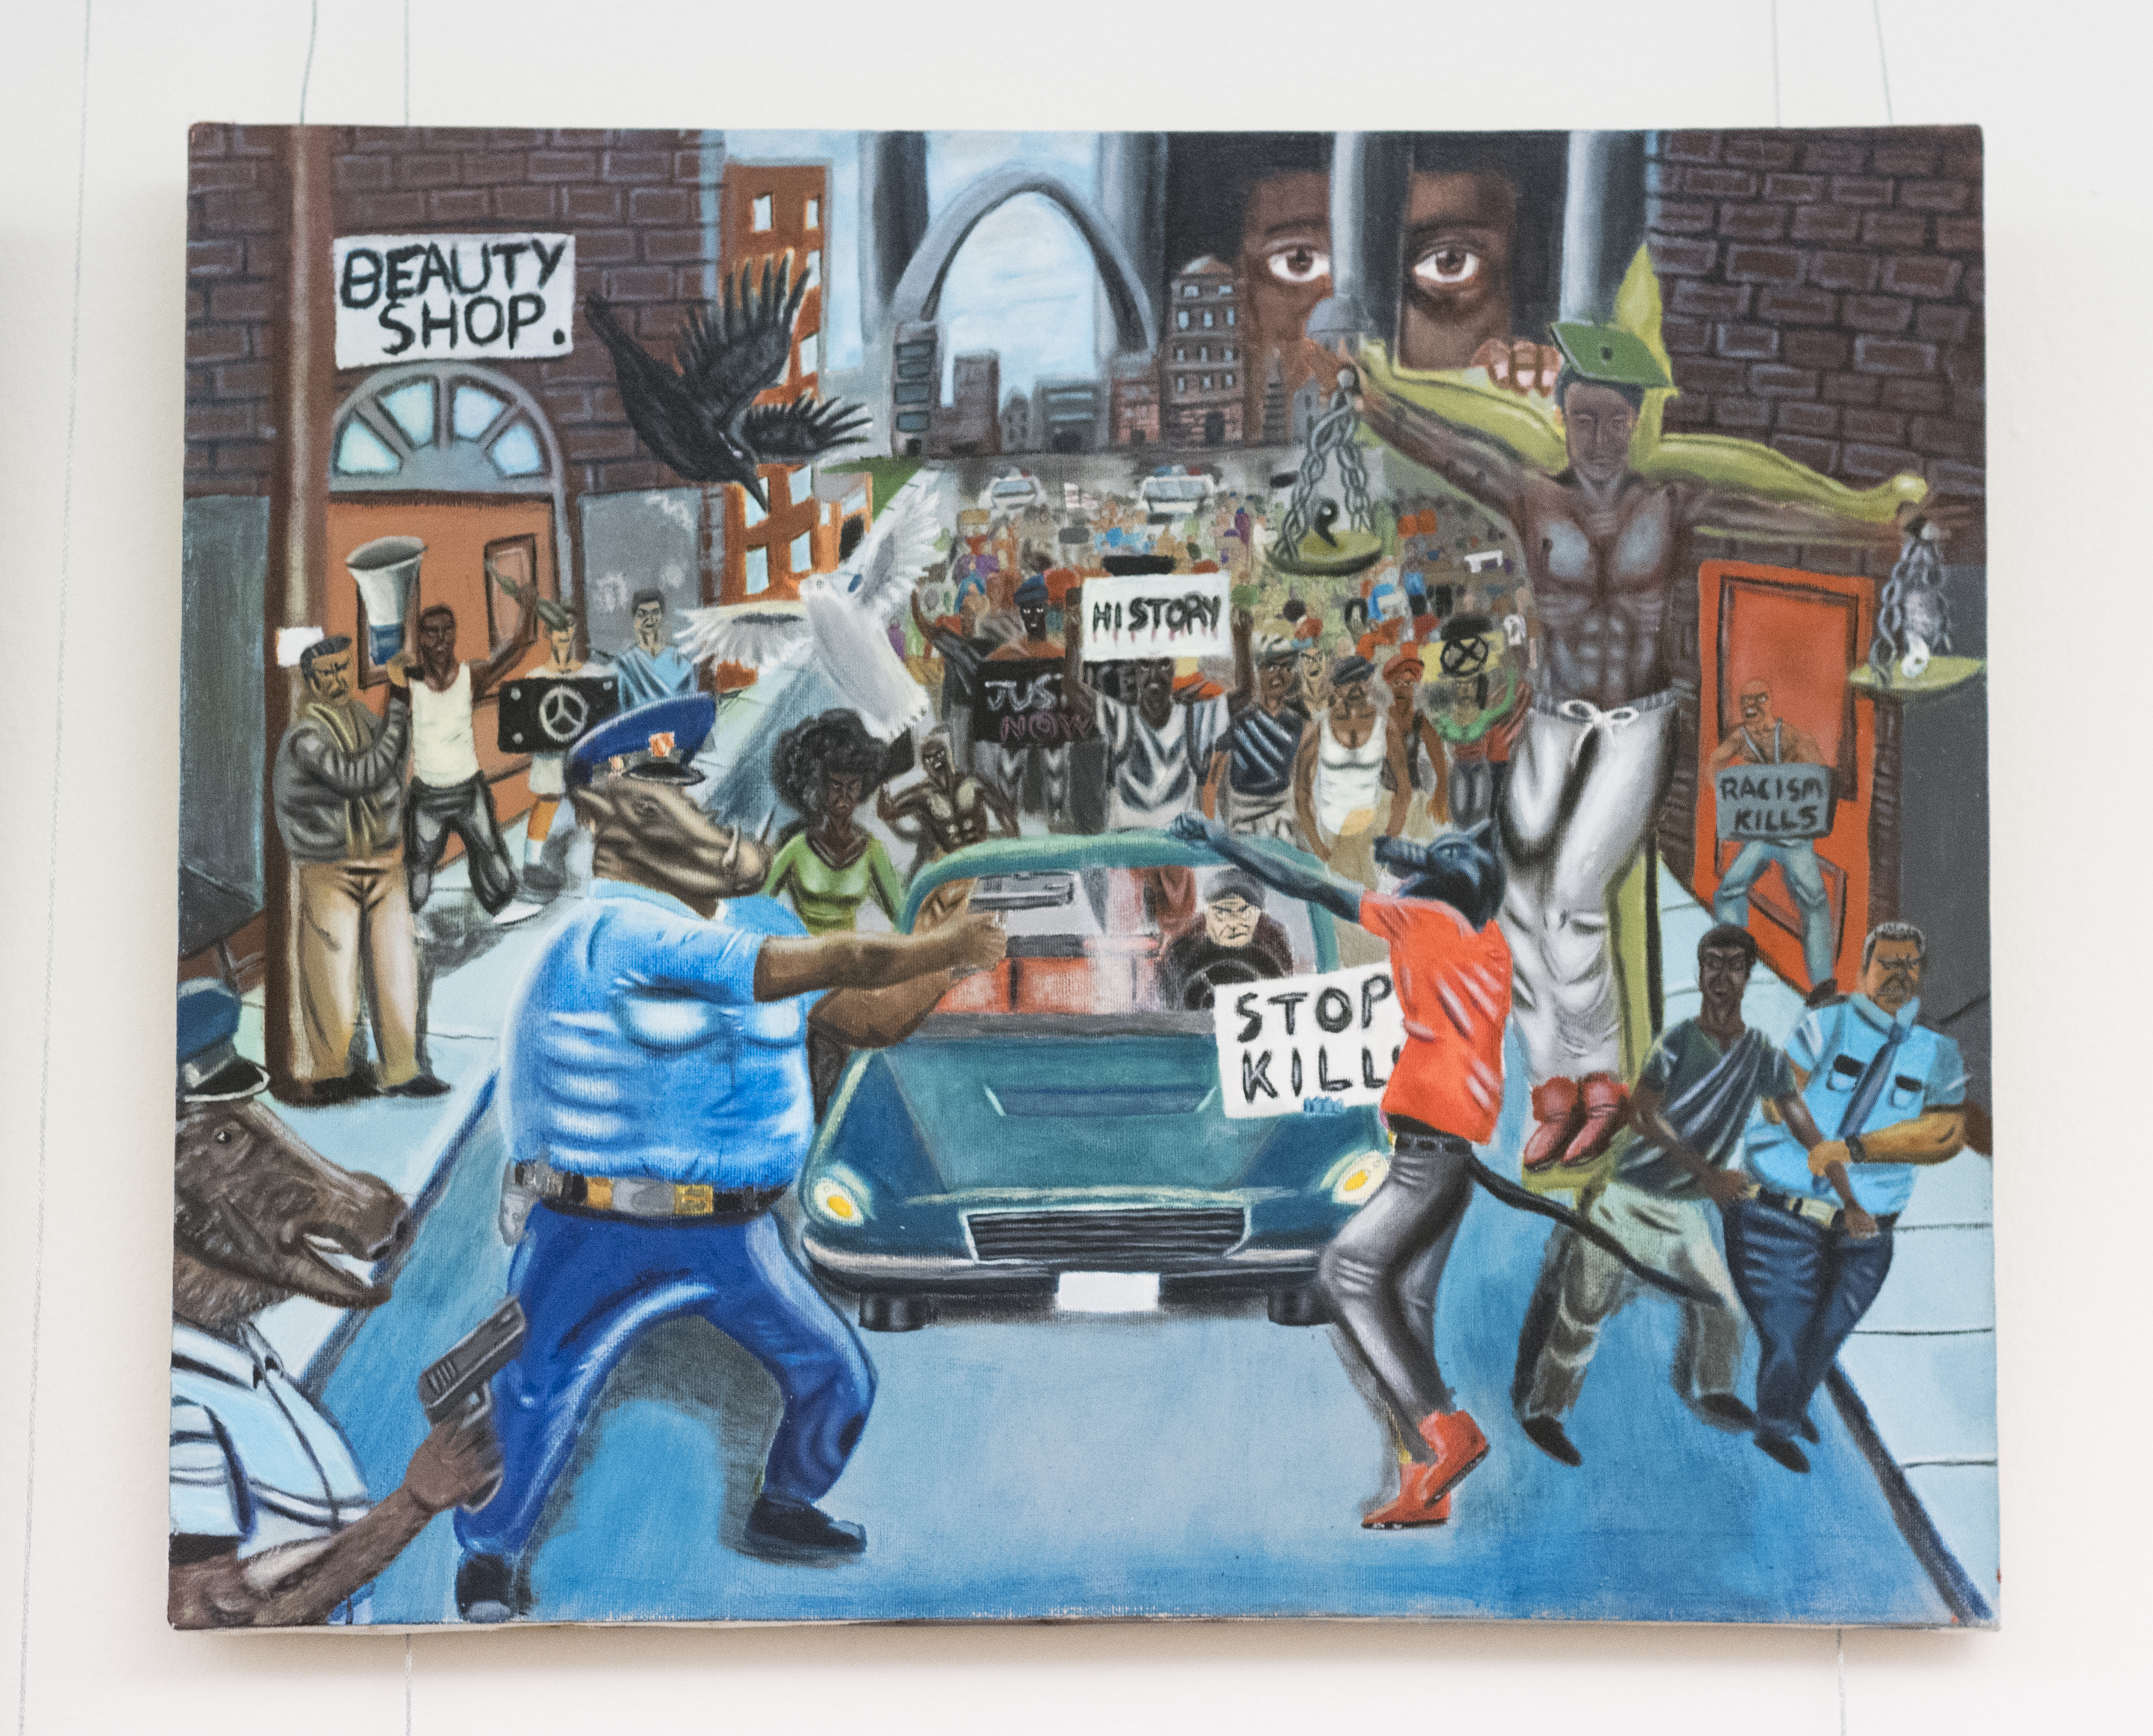 Congress is feuding over a teen's controversial painting that dramatizes events in Ferguson